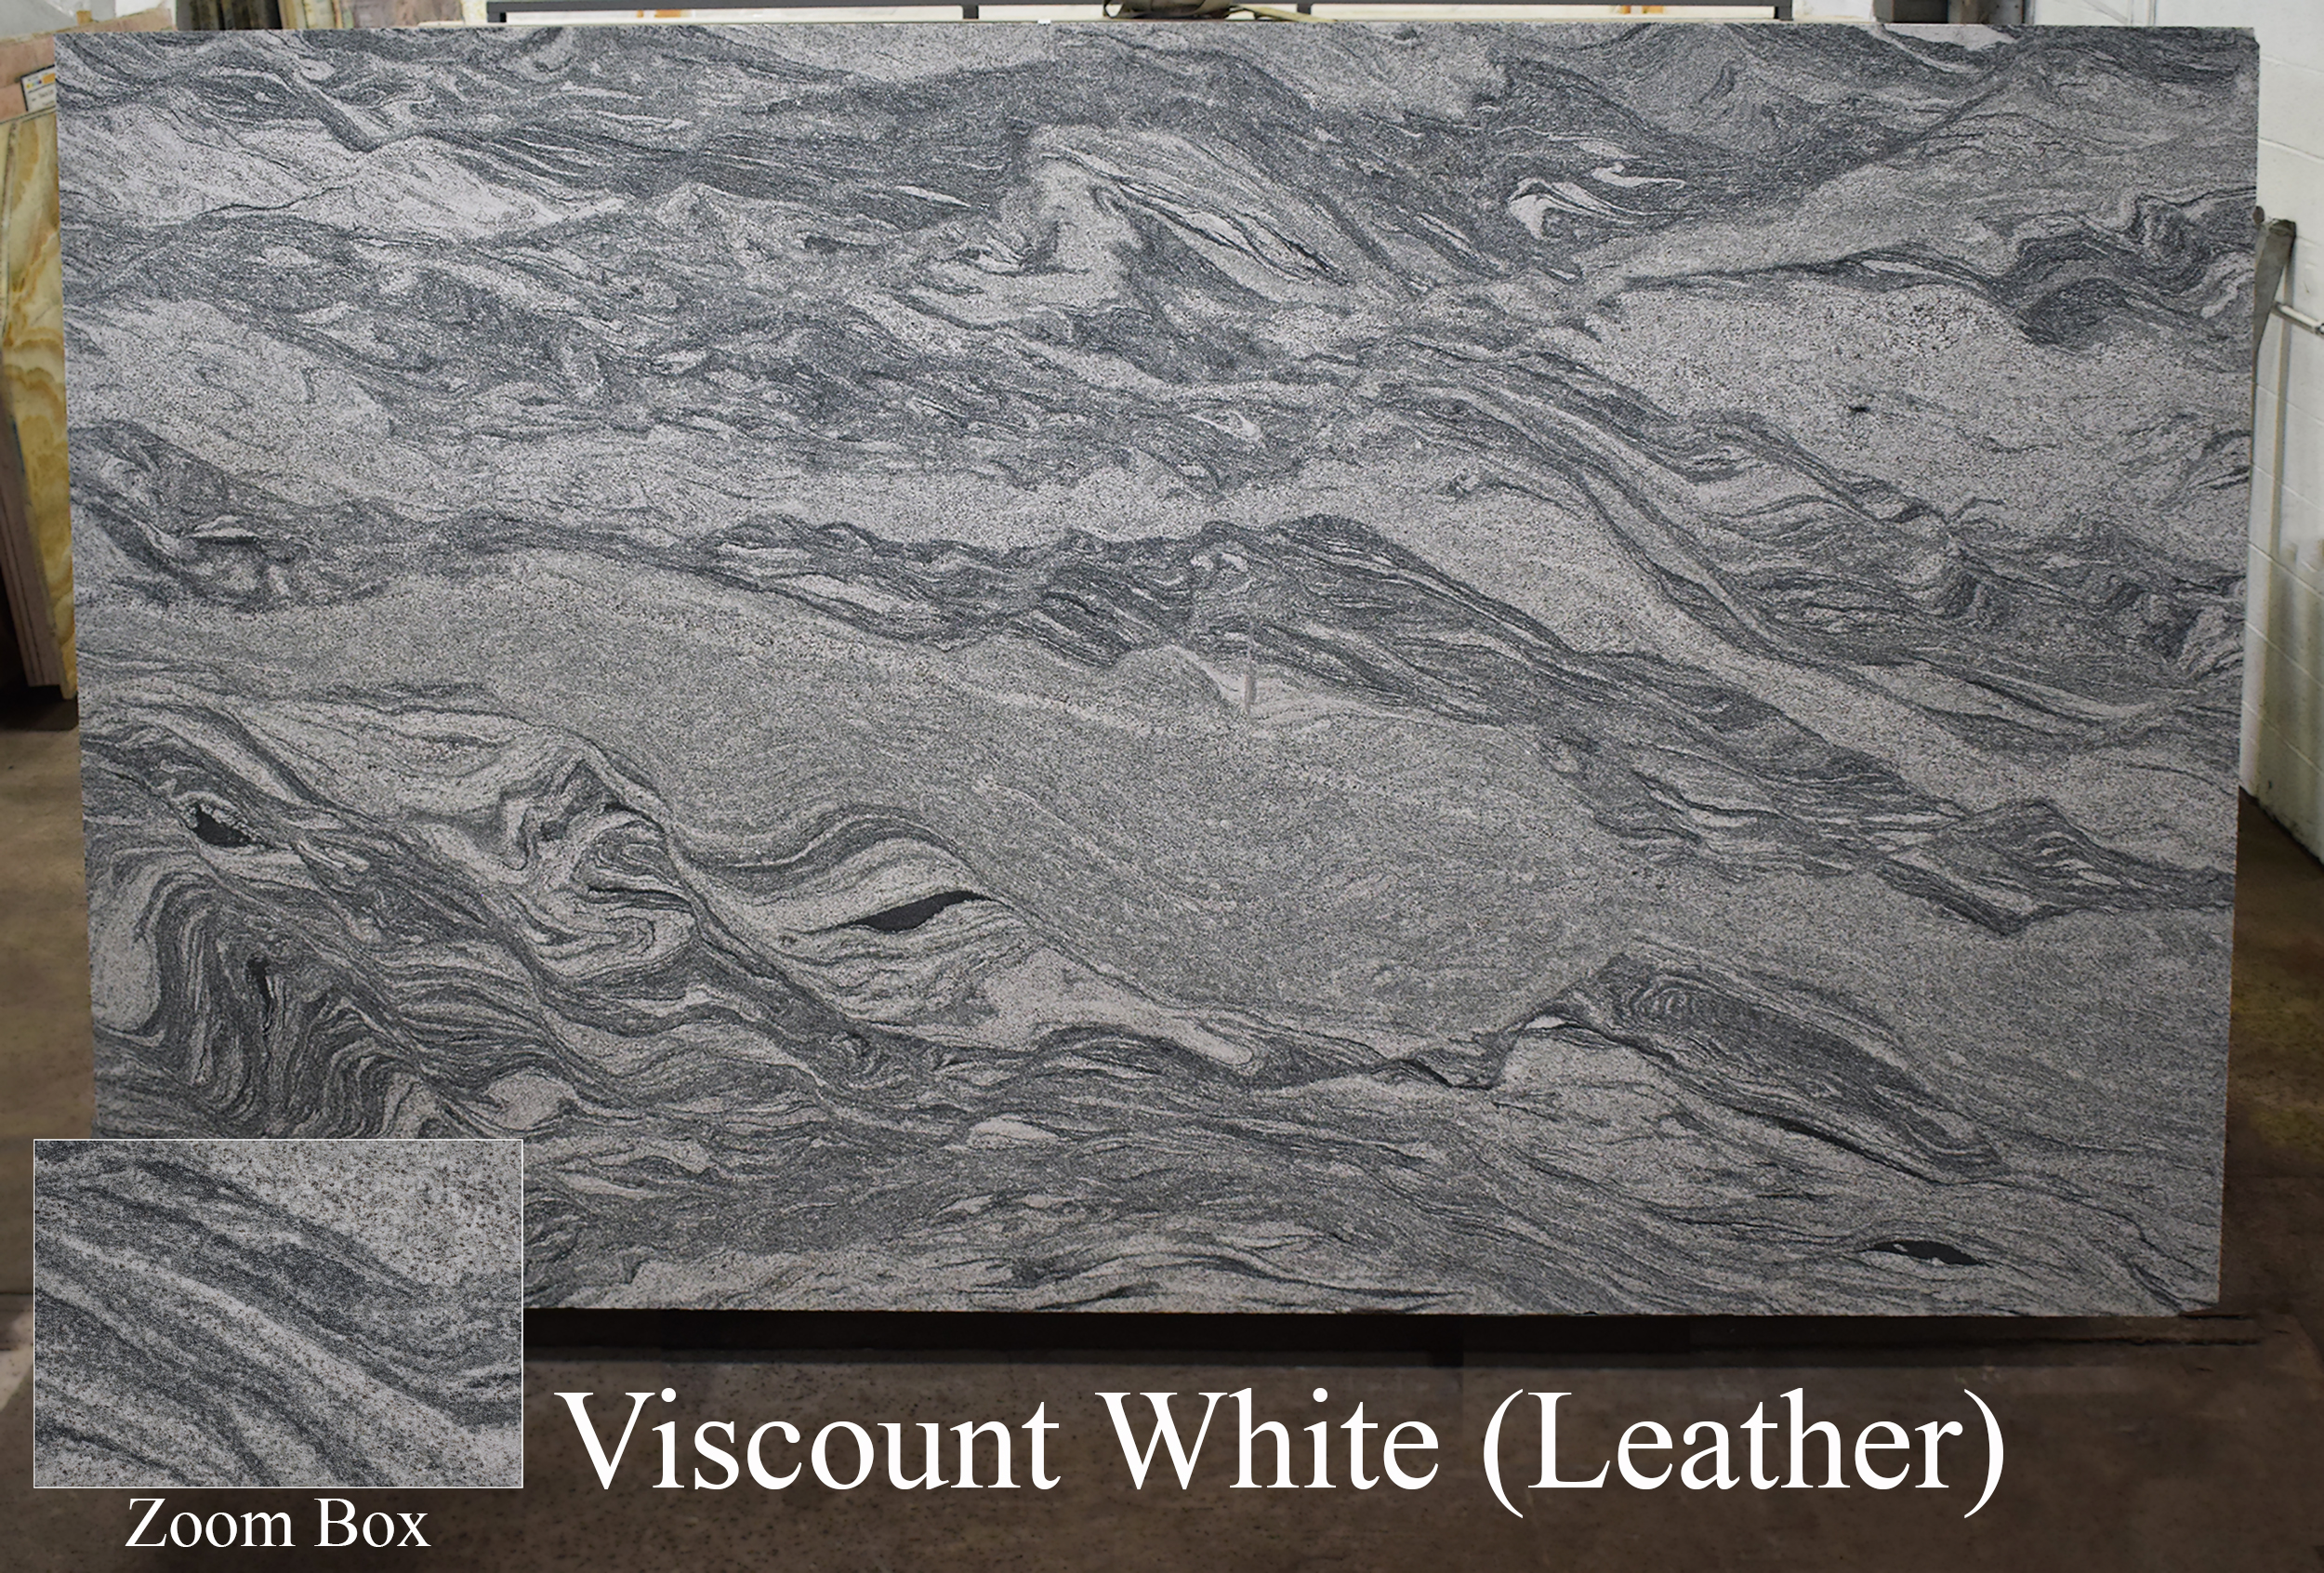 VISCOUNT WHITE (LEATHER)